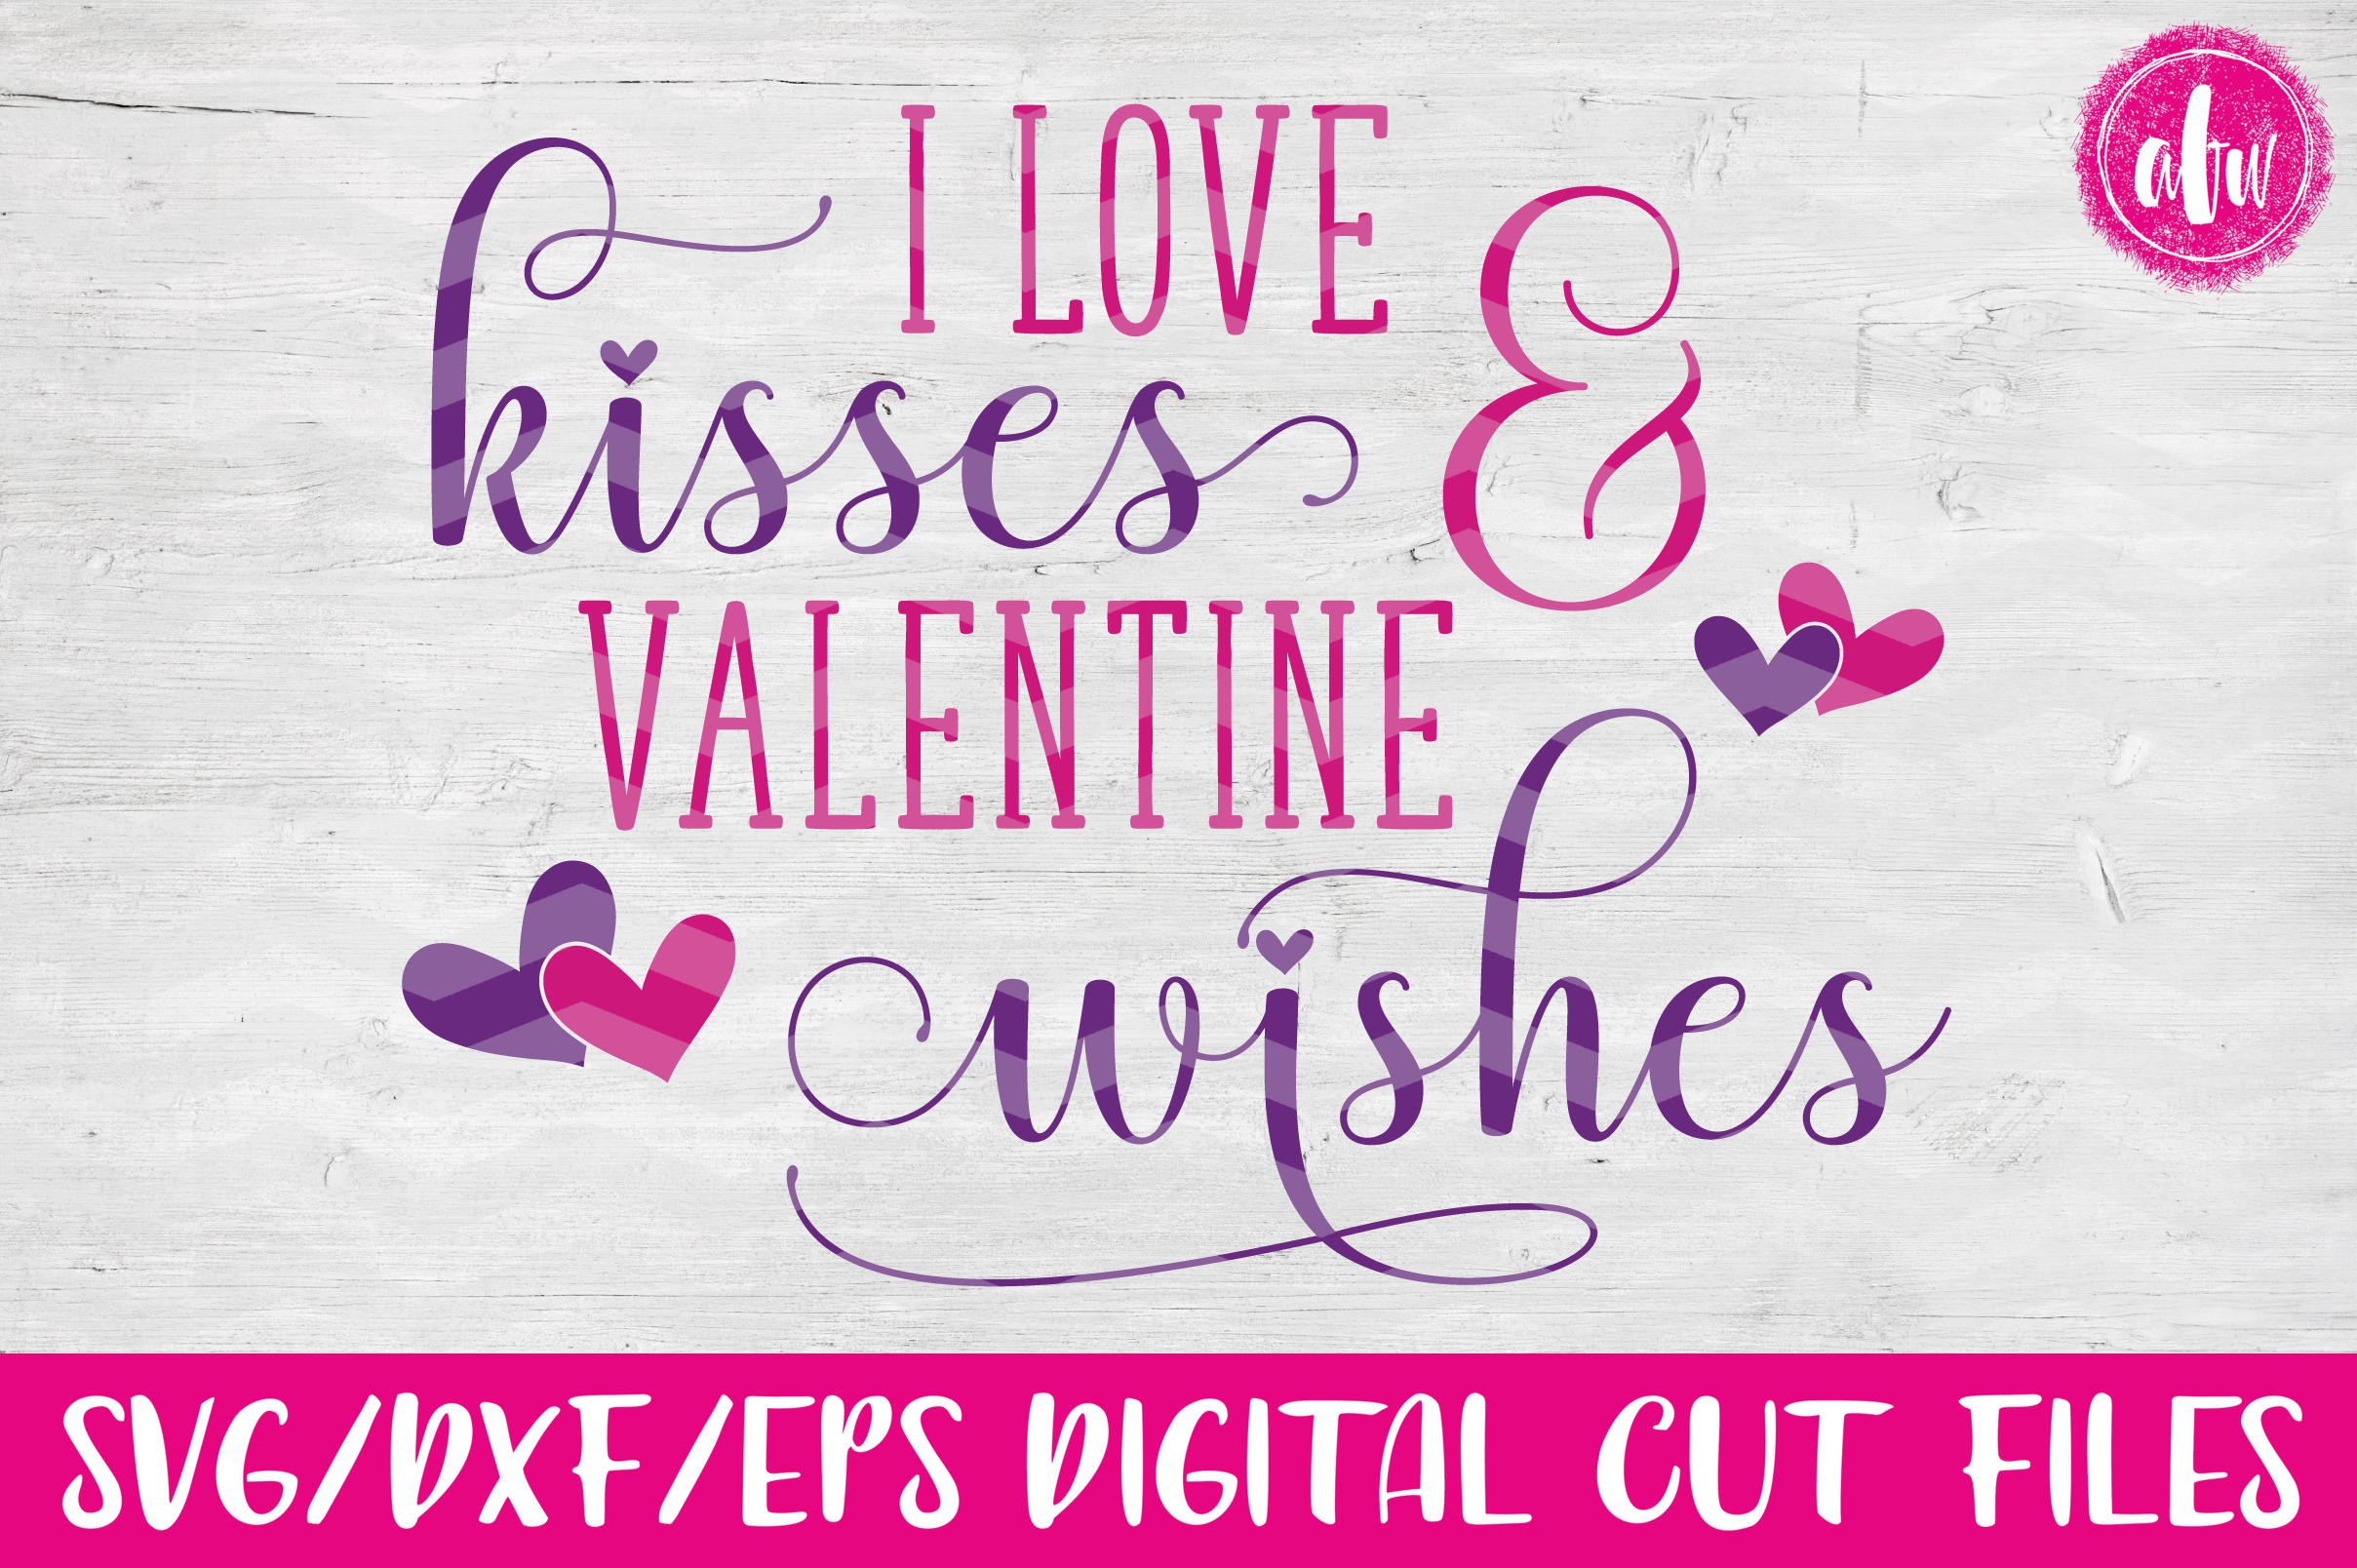 Kisses & Valentine Wishes - SVG, DXF, EPS Cut File example image 1